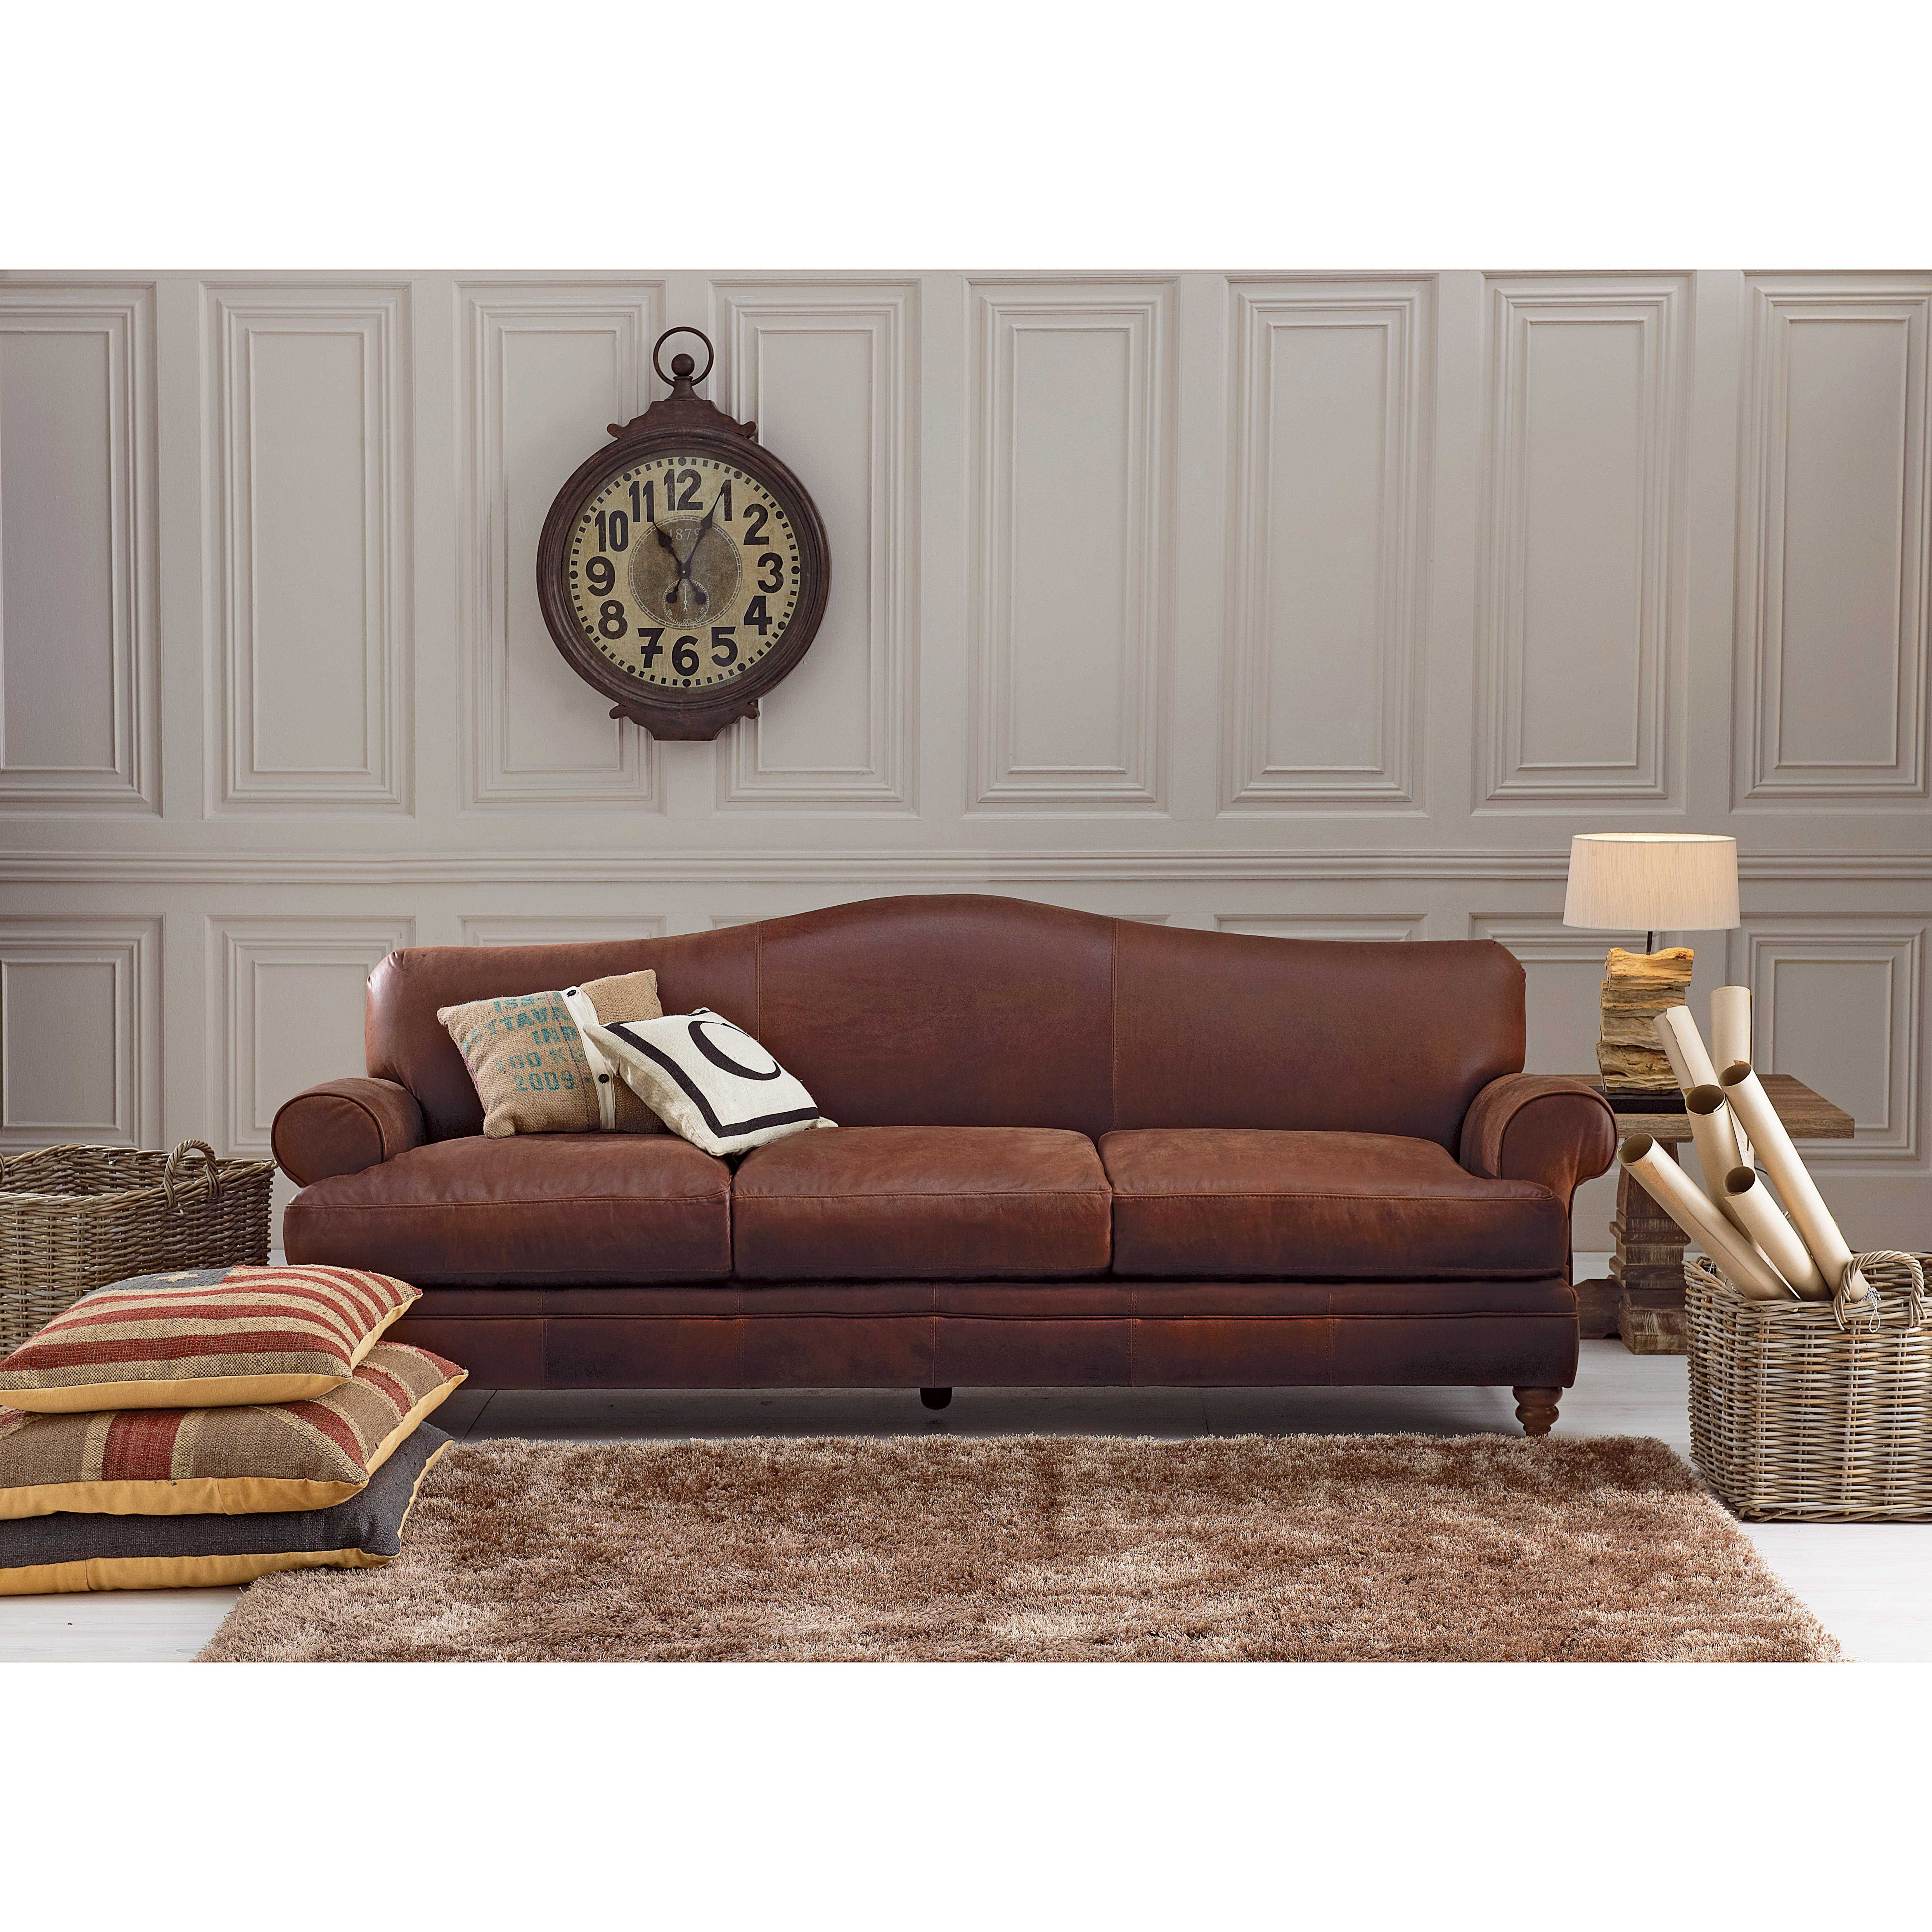 Hastings 3 Seater Leather Sofa From Domayne